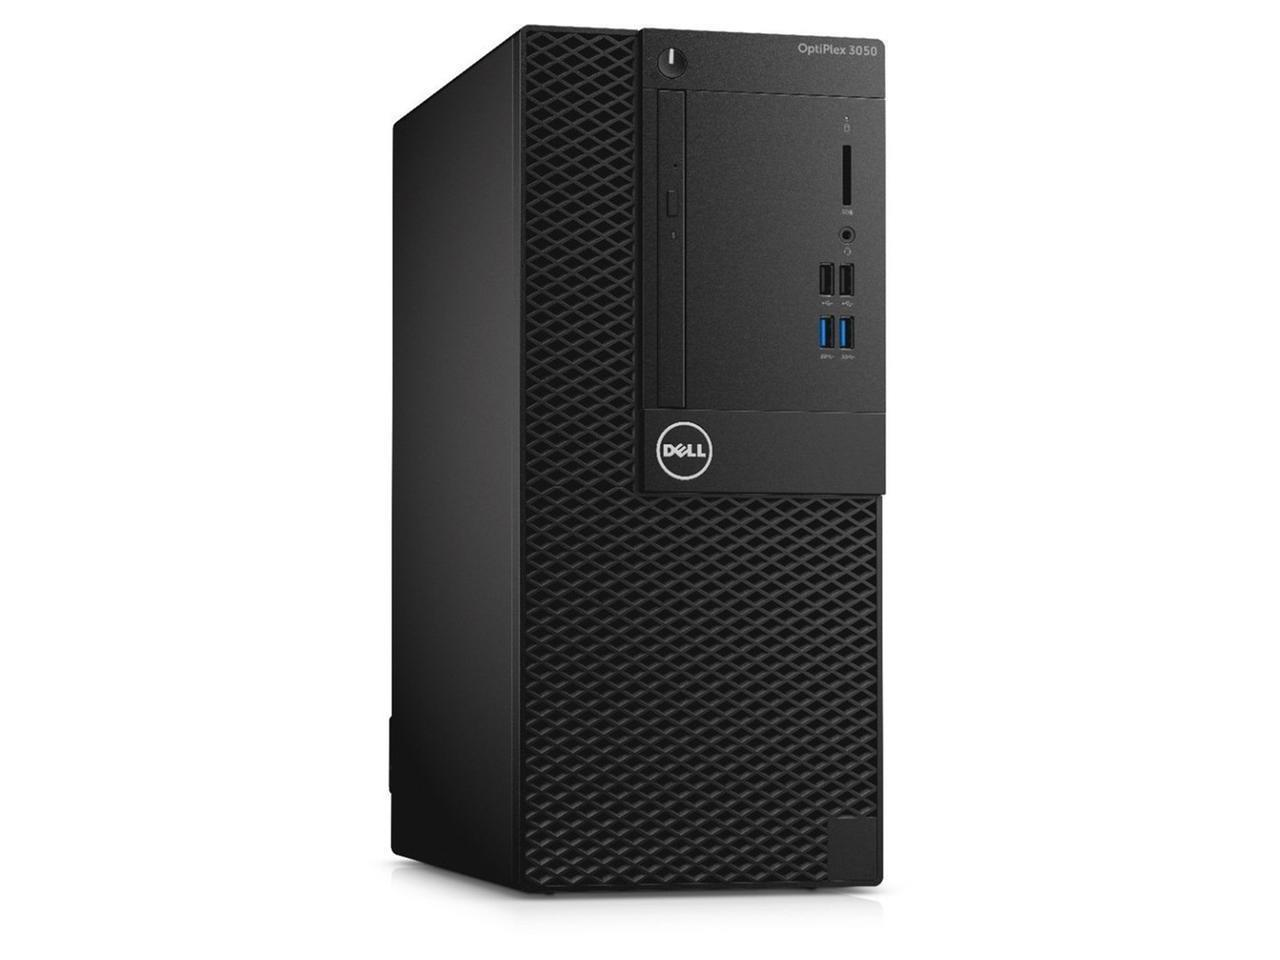 Dell Optiplex 3050 MT Desktop(i5-7500.4GB.1TB)Opt3050MT-i550|4G|1TB